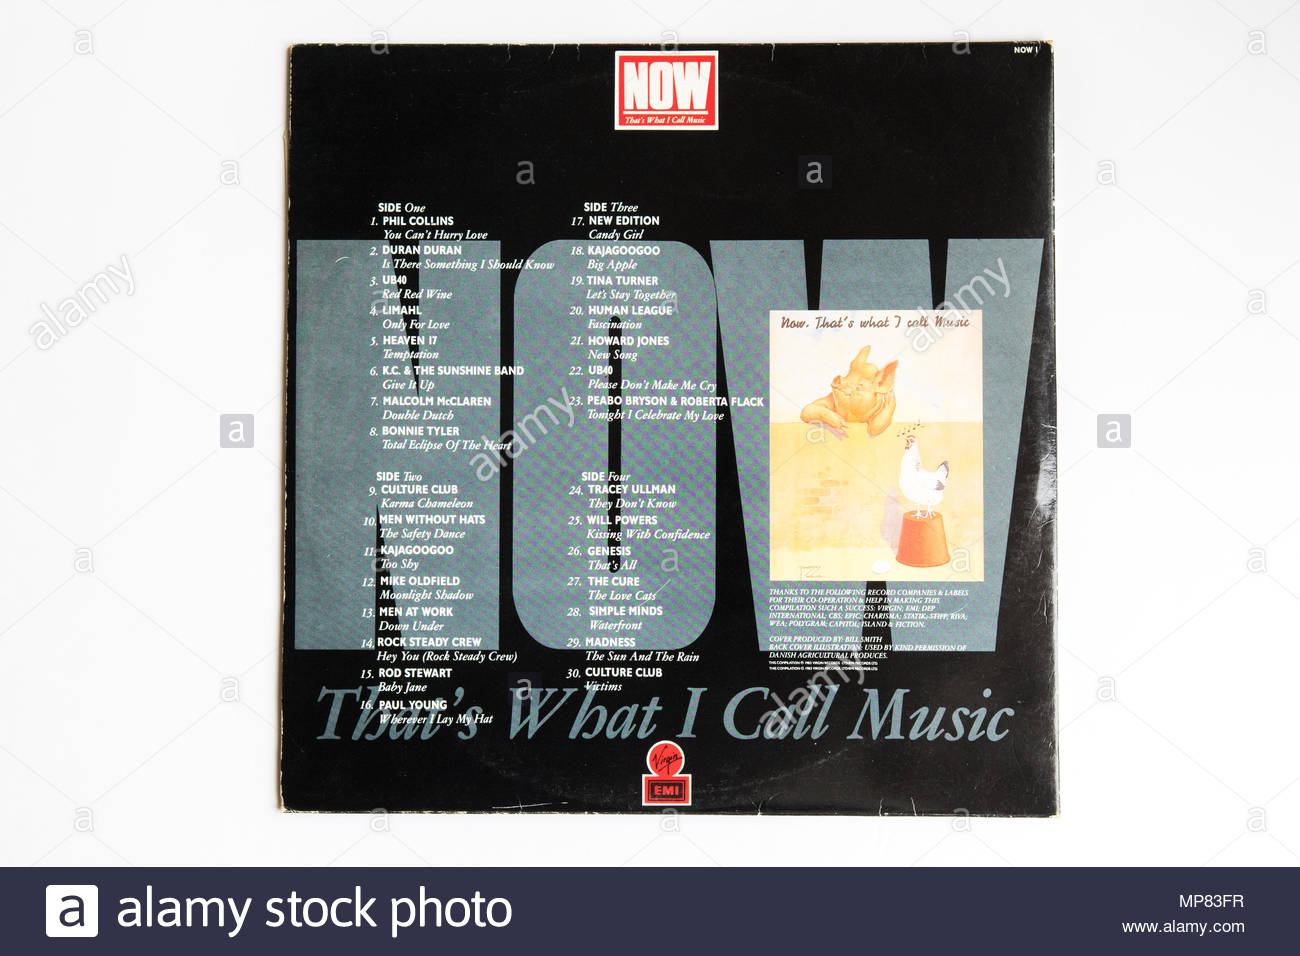 Now that's what I call music - Now! 1 Now 1 album sleeve back - Stock Image